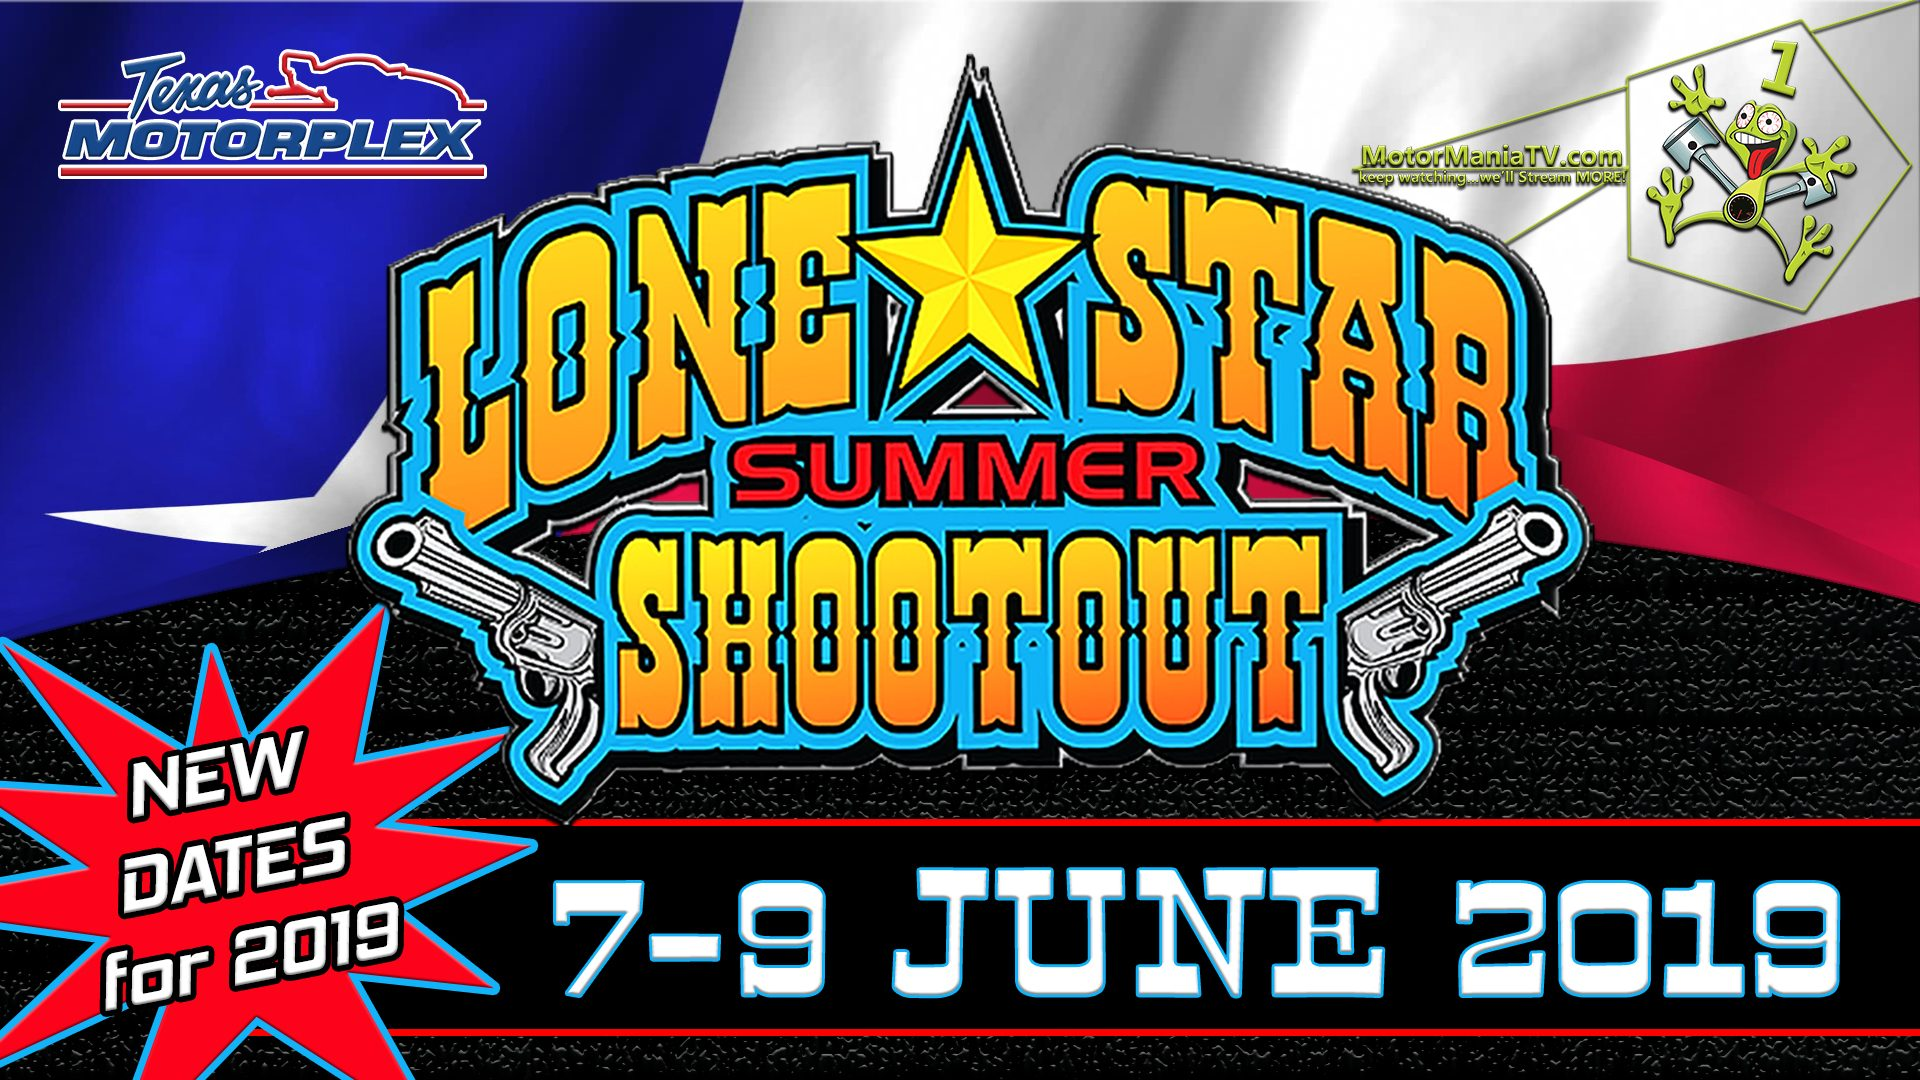 June7-9_LSshootout2019_Wps3